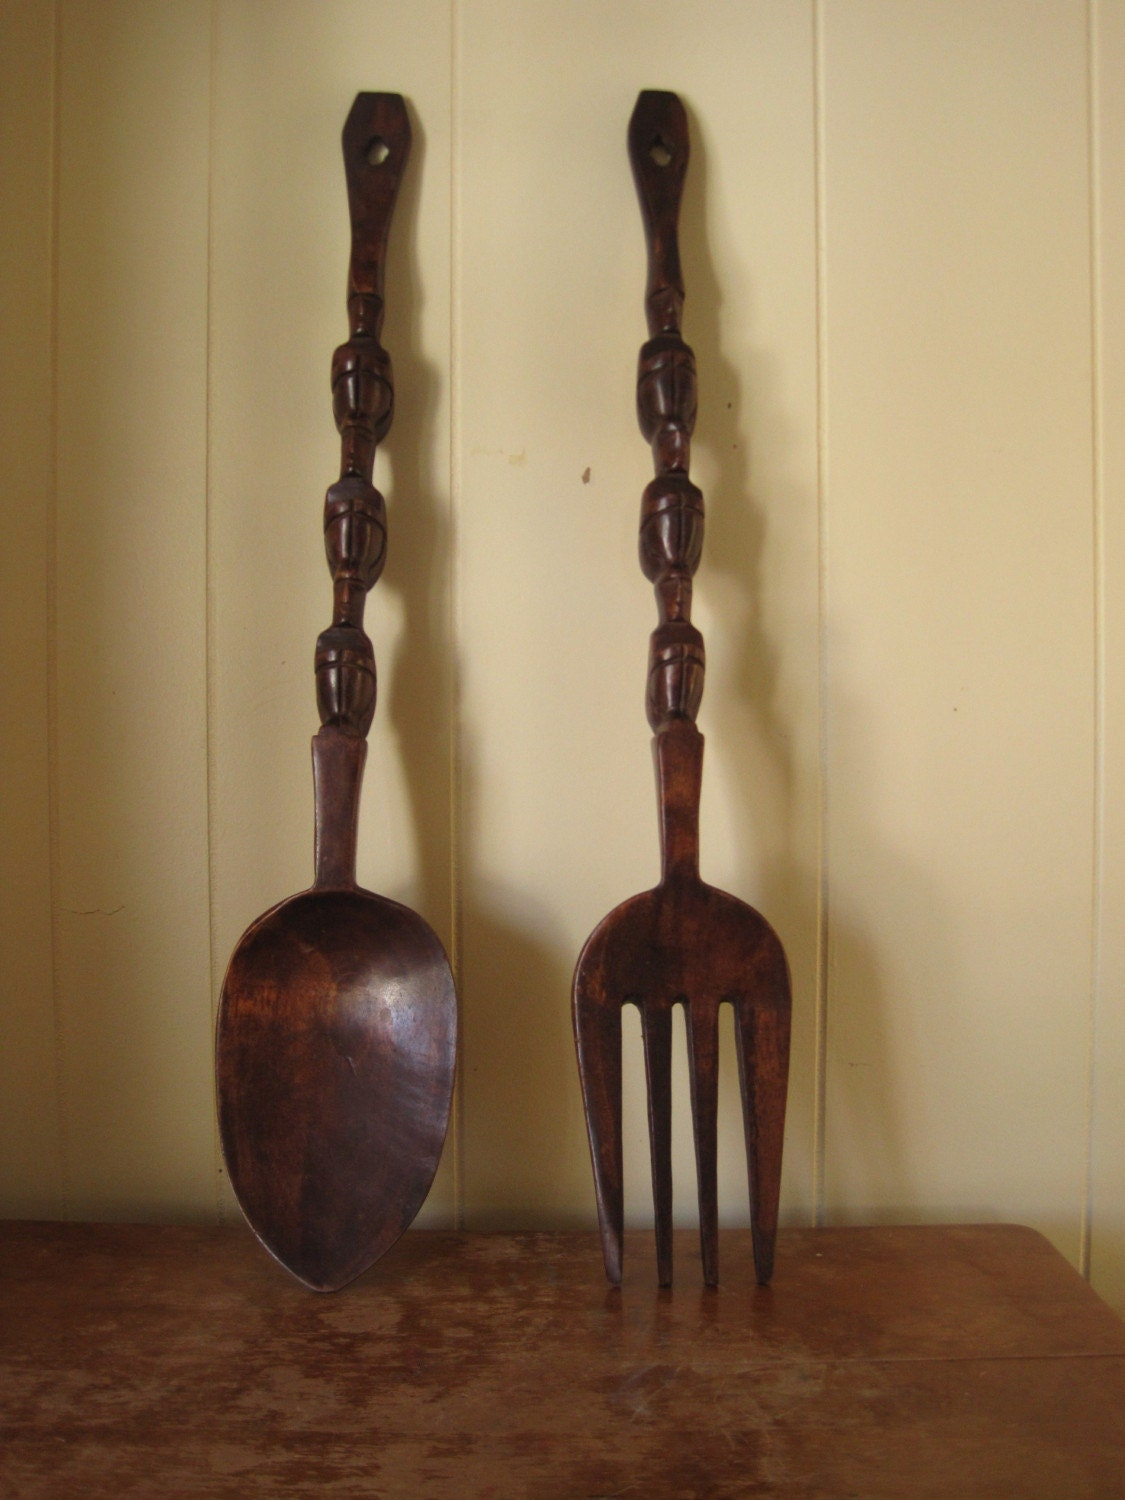 The Big Kitschy Fork And Spoon Vintage Wall Decor